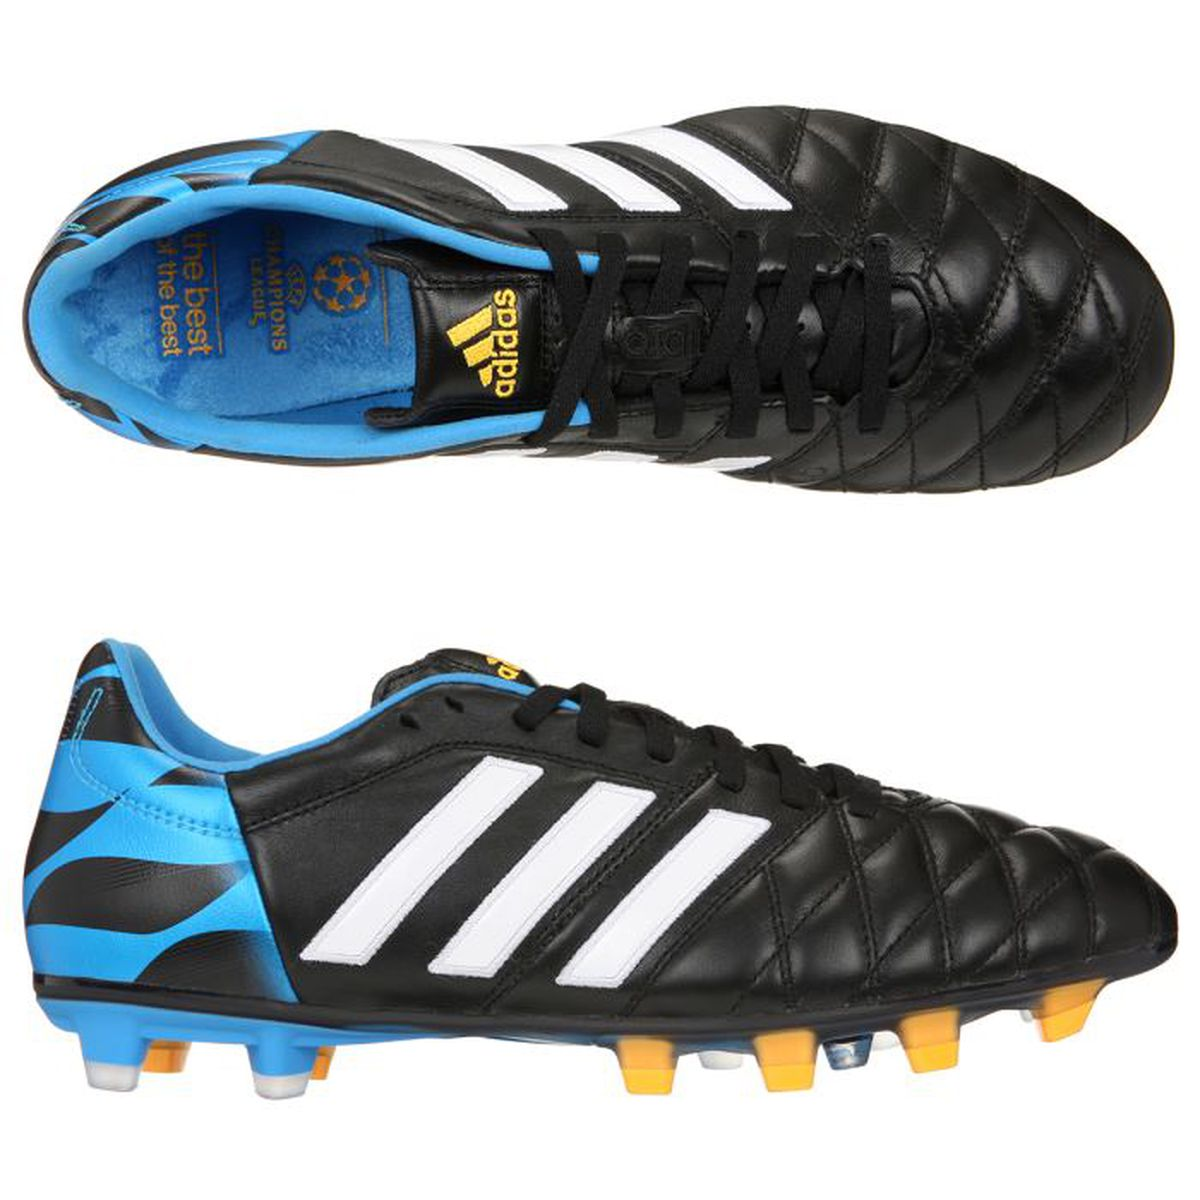 CHAUSSURES DE FOOTBALL ADIDAS Chaussures Football 11Pro FG Homme